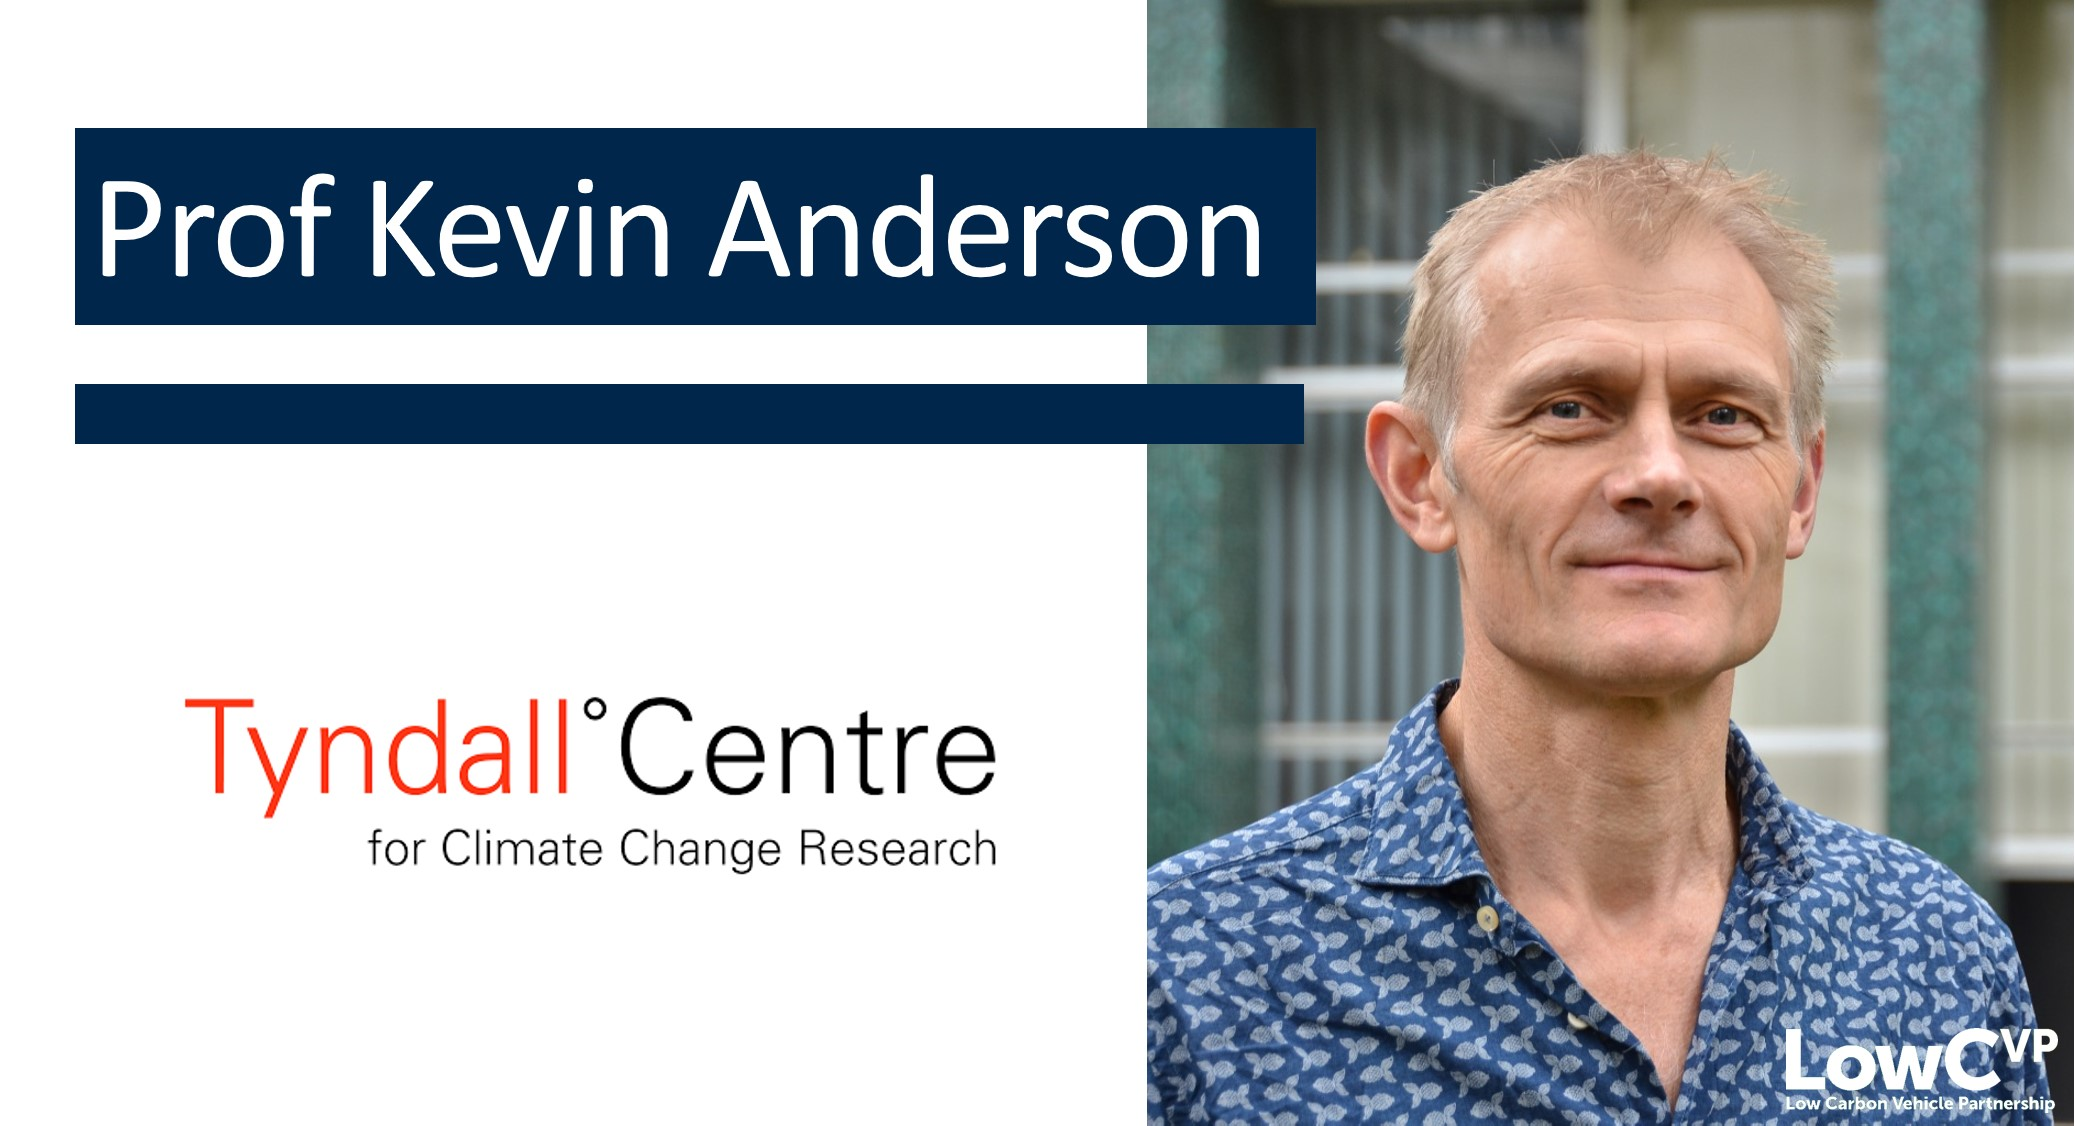 Prof Kevin Anderson, Professor of Energy and Climate Change, Tyndall Centre for Climate Change Research